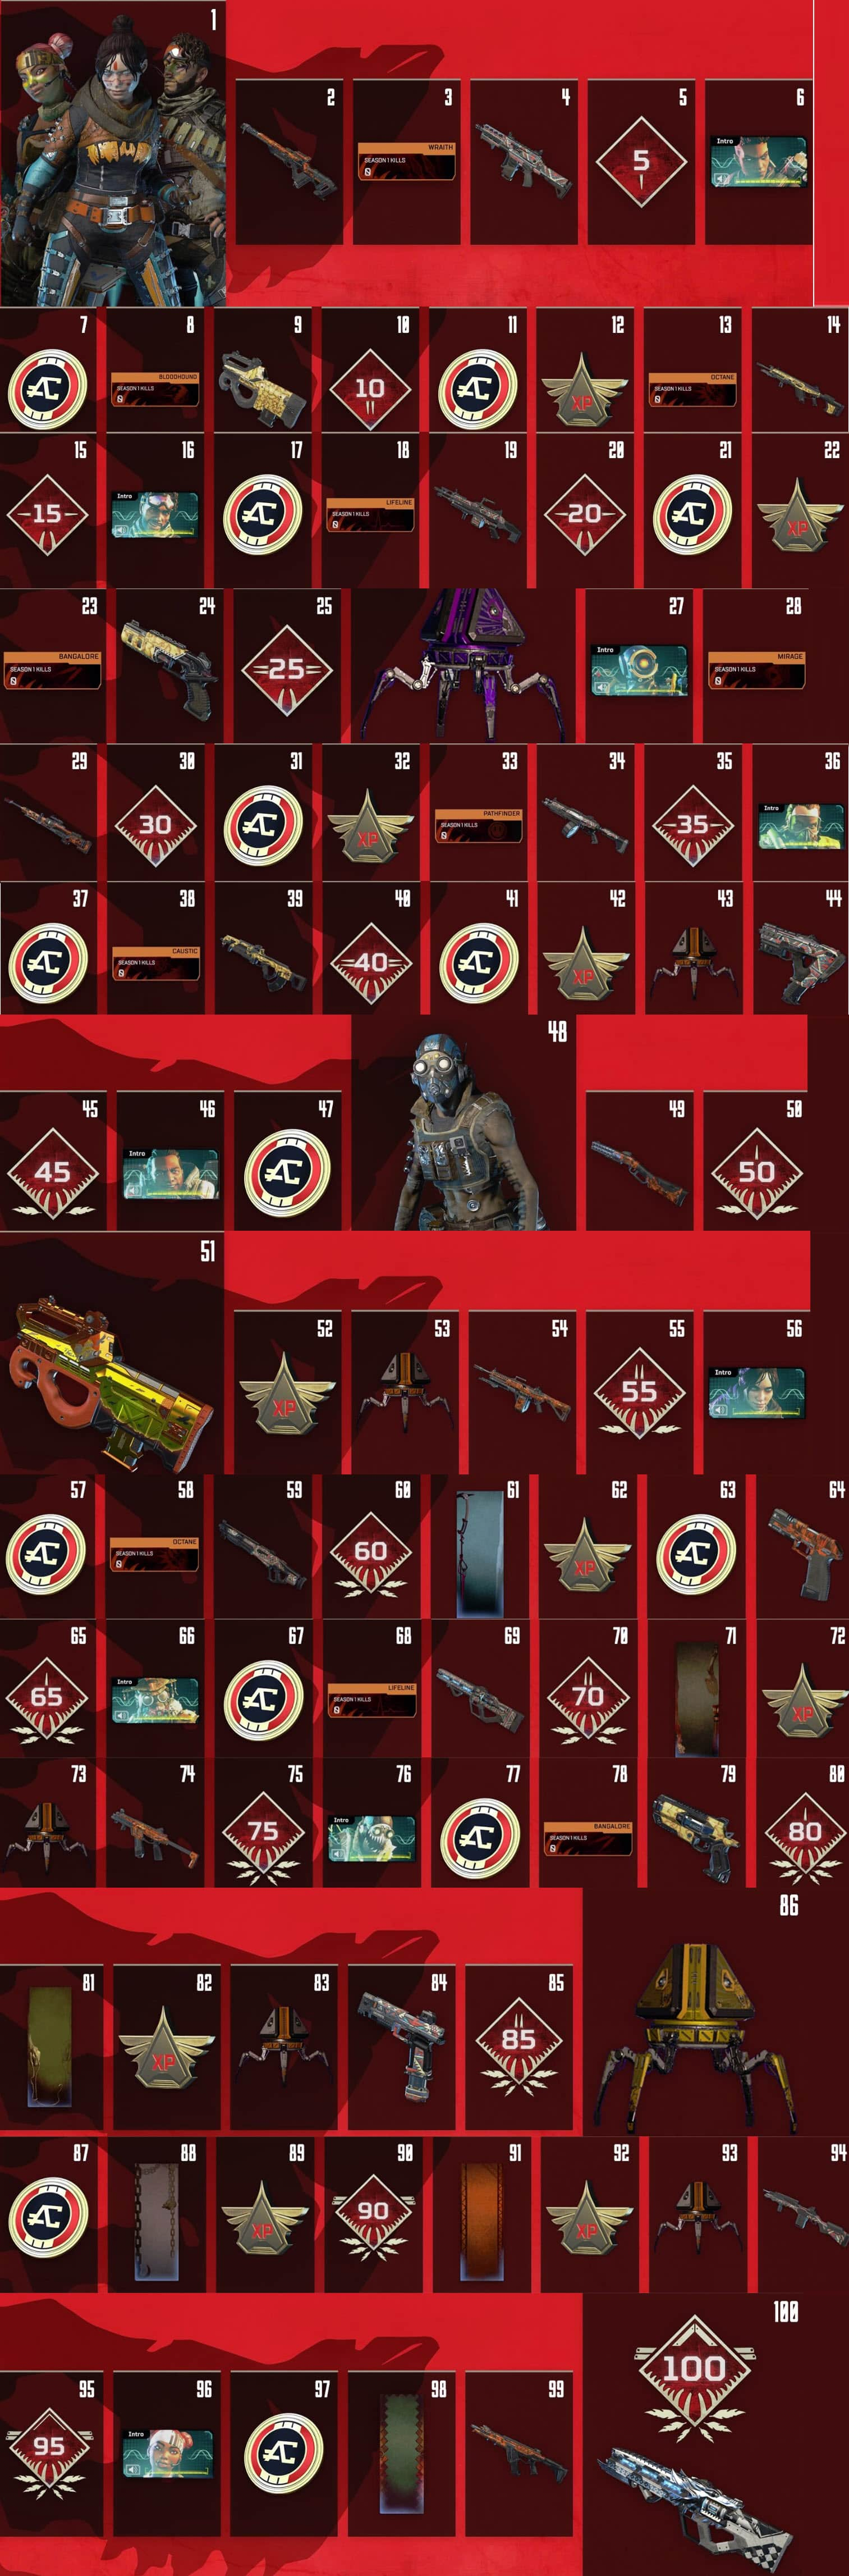 All Apex Legenfs Season 1 Levels from 1 to 100